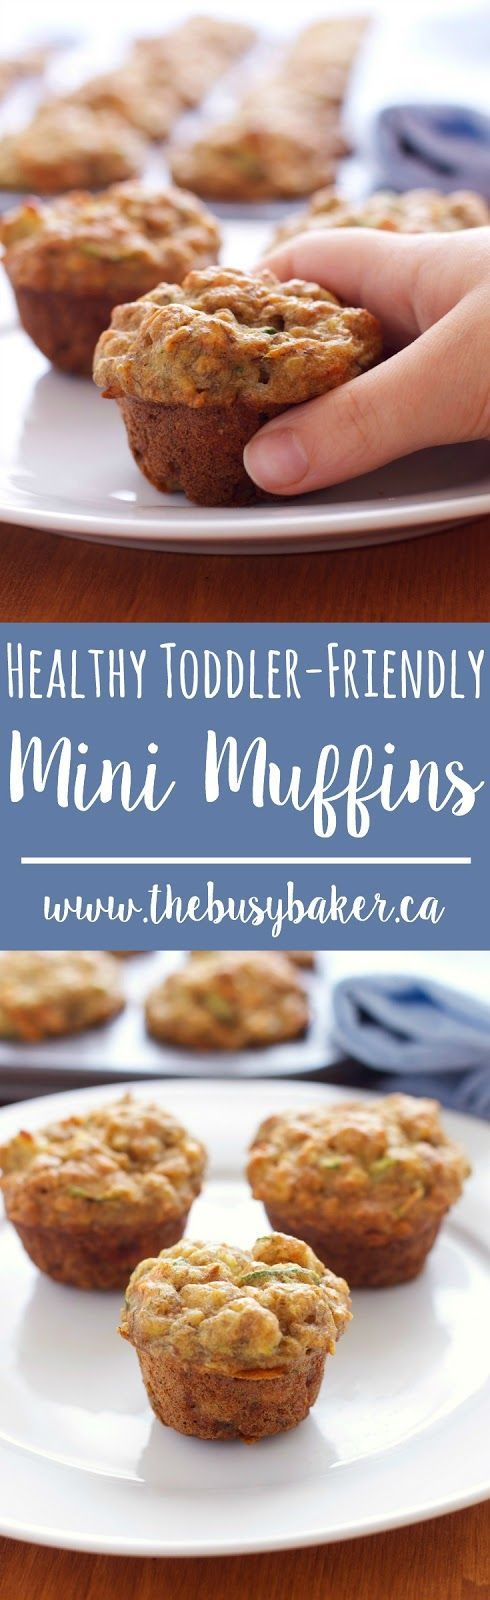 Will you have little ones at your Easter brunch table this year? Try these delicious and healthy toddler-friendly mini muffins! Recipe from thebusybaker.ca!